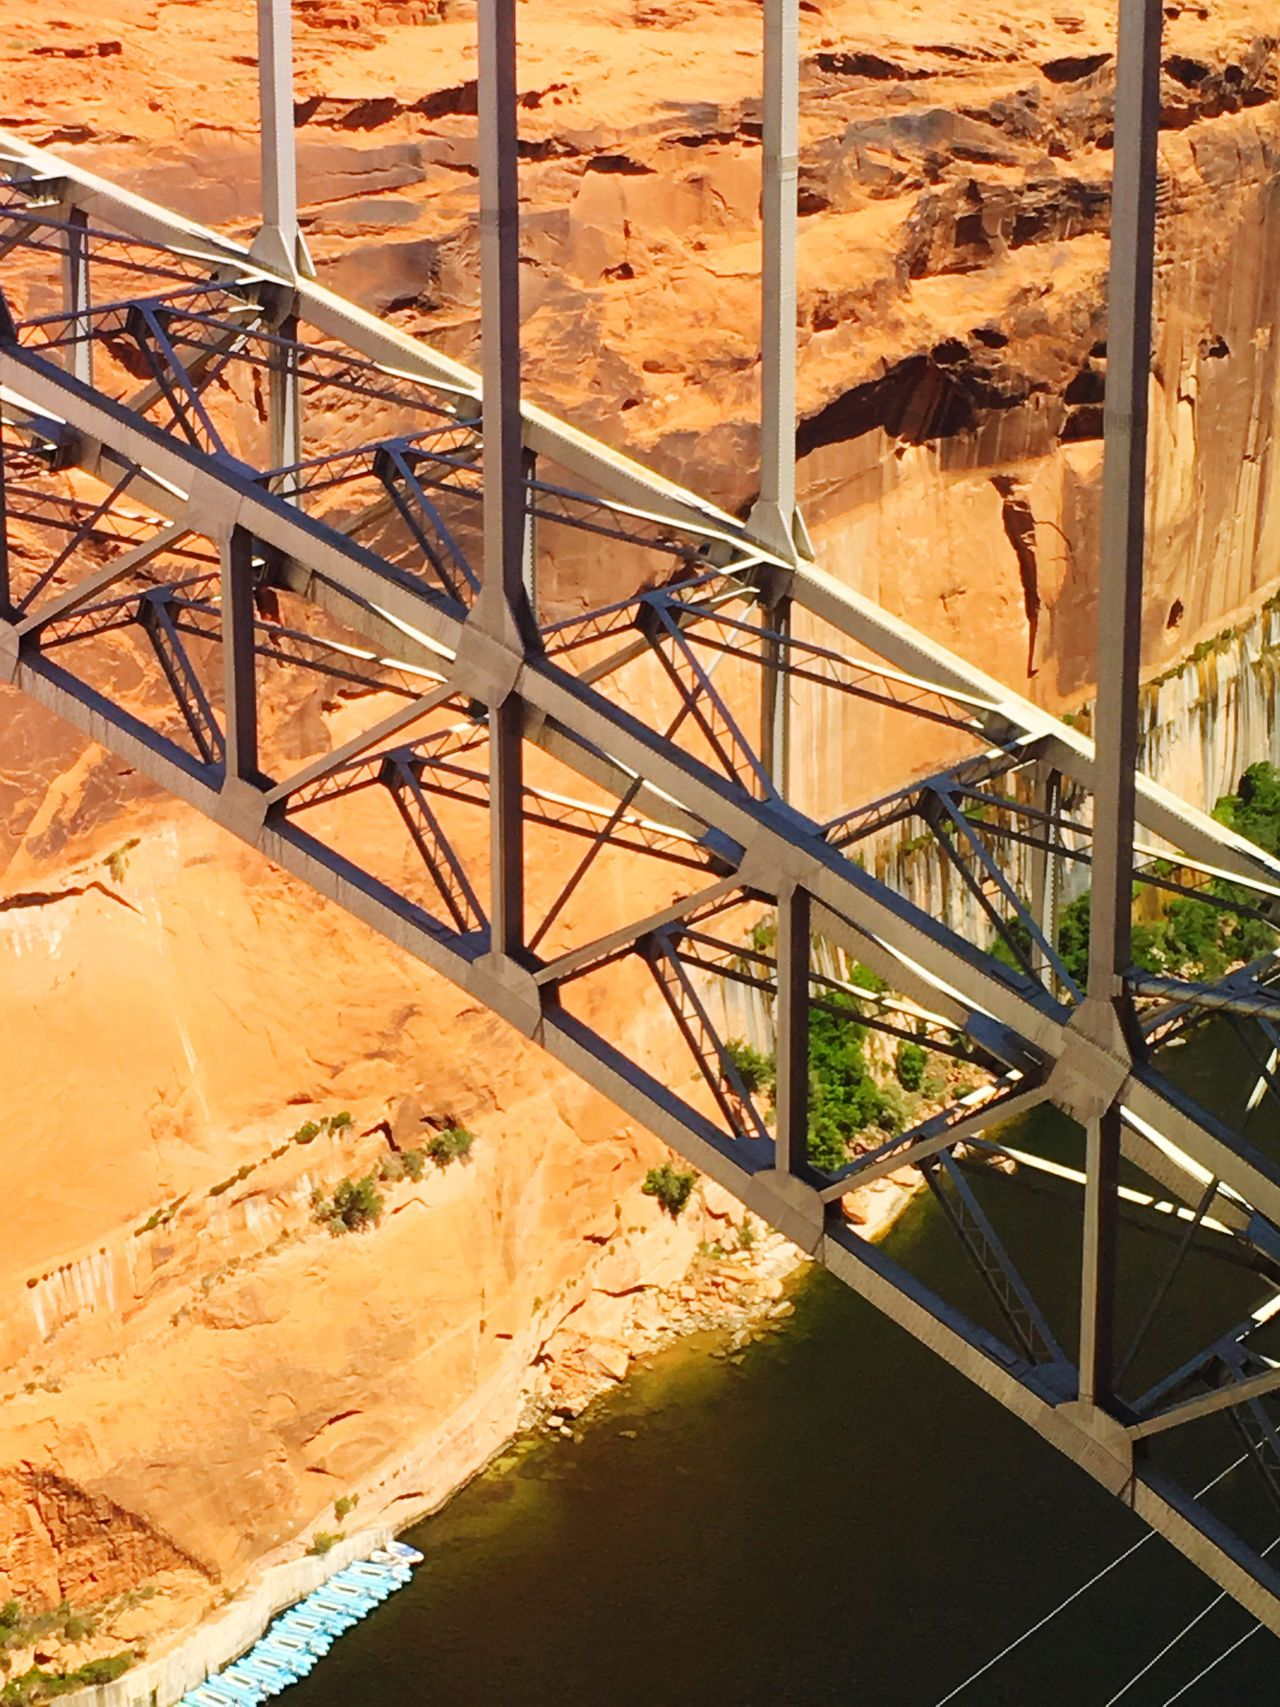 Sand Day Sunlight Nature No People Built Structure Indoors  Desert Industry Dam Lakepowell Stausee Bridge Steelframe Gorge